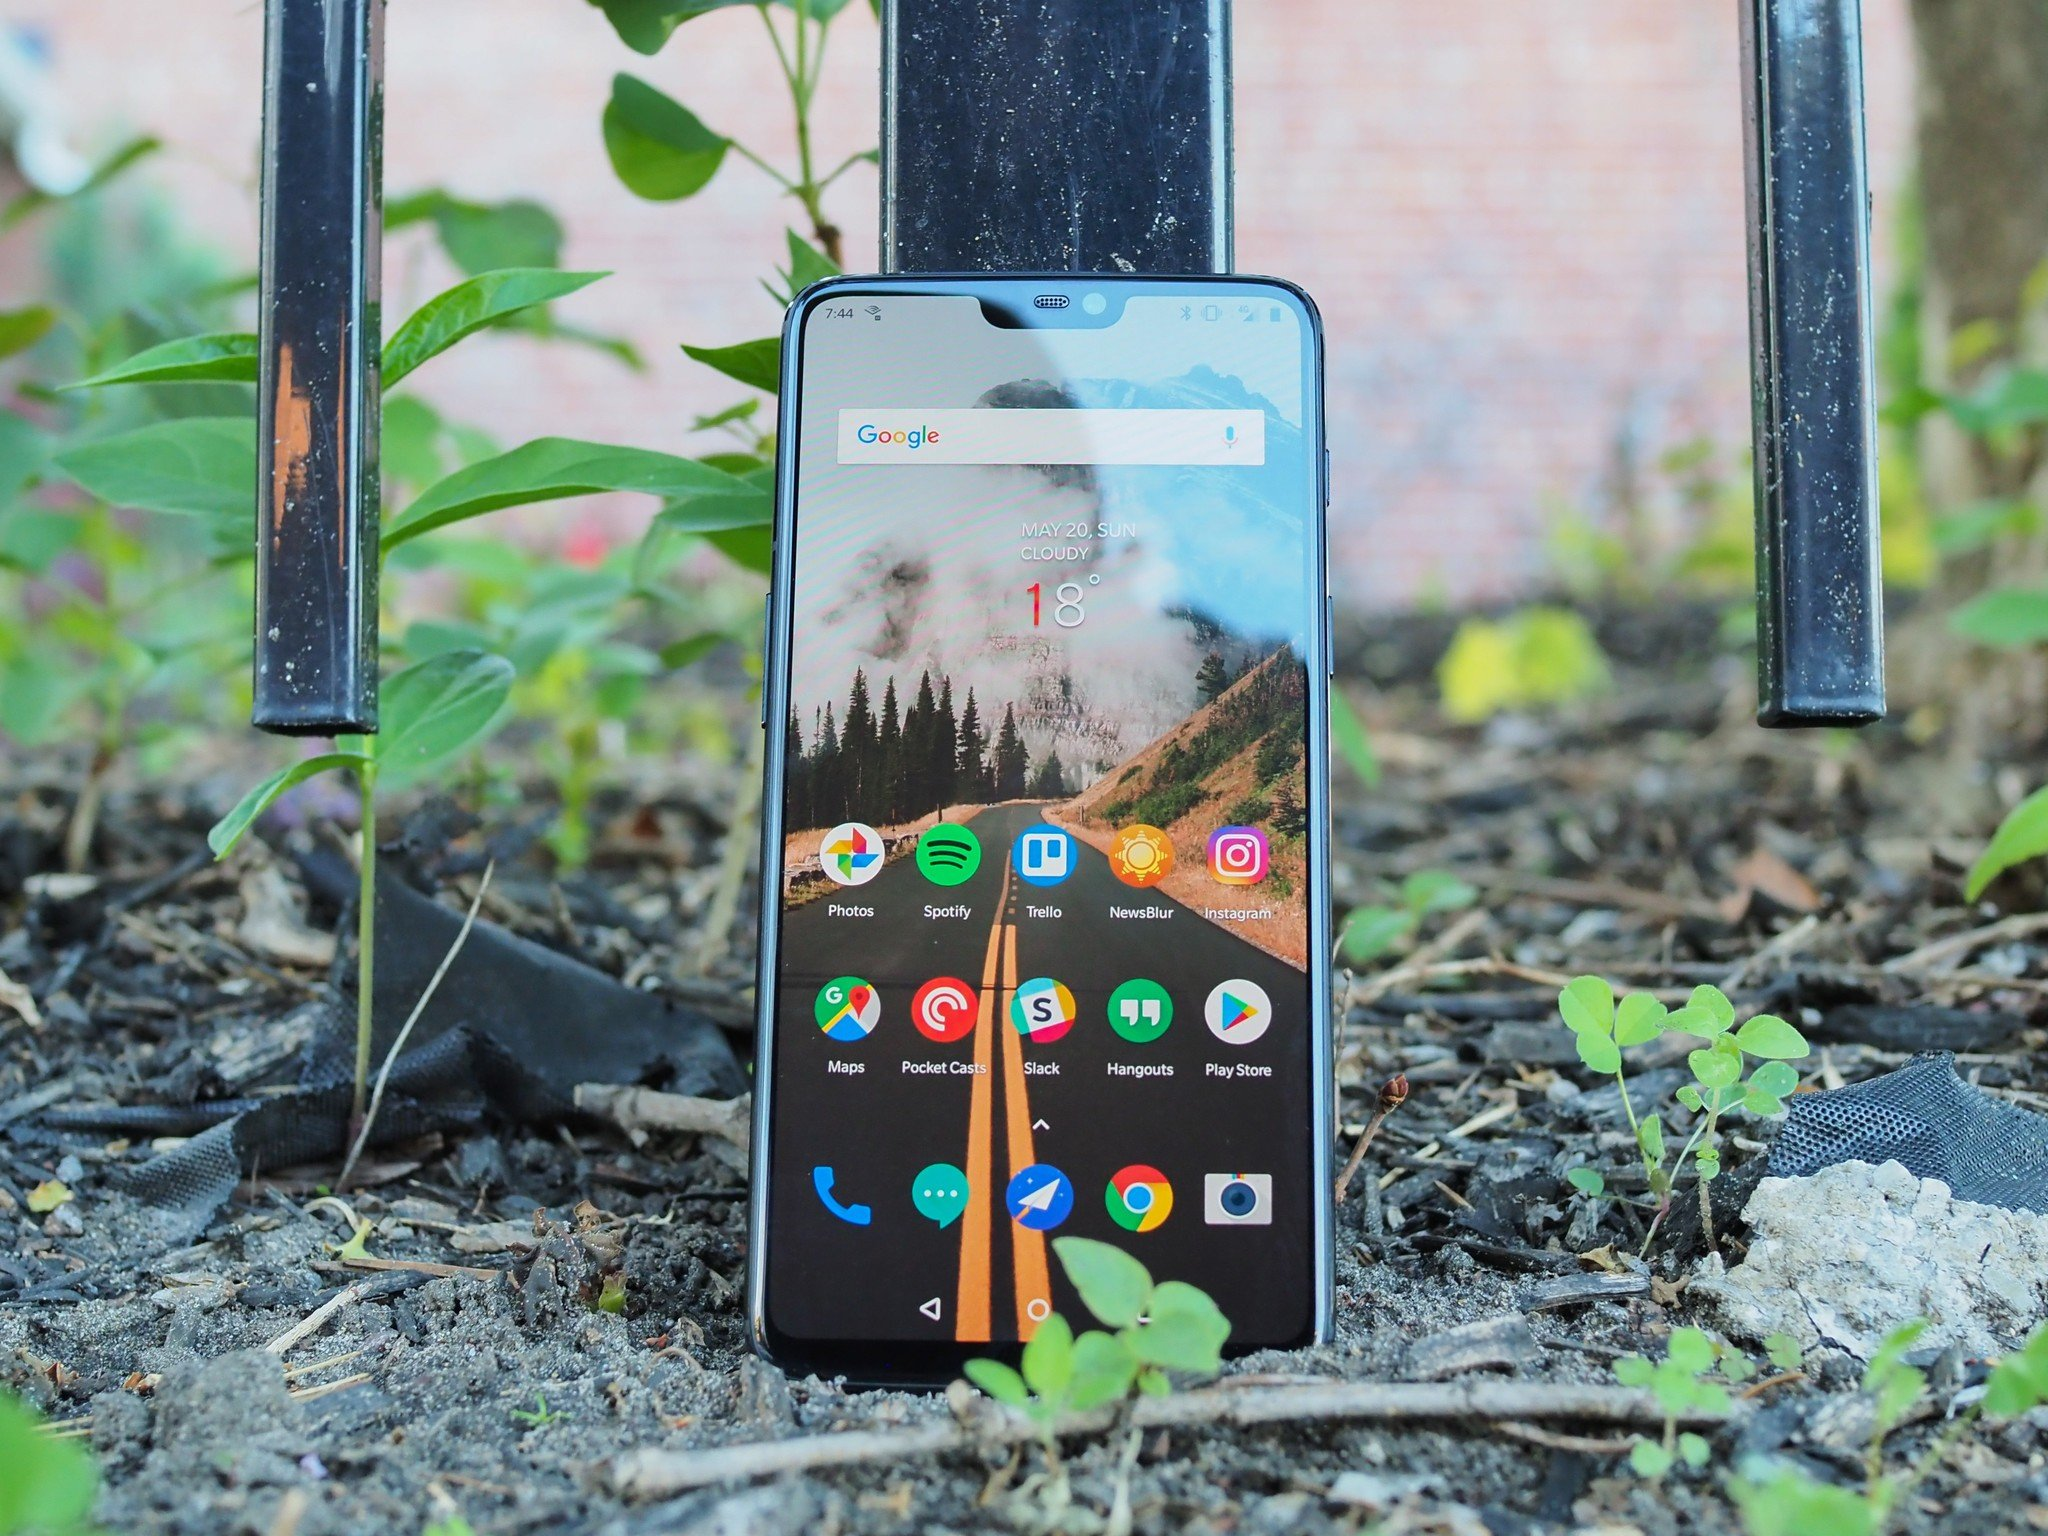 Especial Oneplus Android Central A Screen Protector Properly Neverhave To Screen Protectors Oneplus Is A New Phone From Brand That Wants You dpreview Are Screen Protectors Necessary